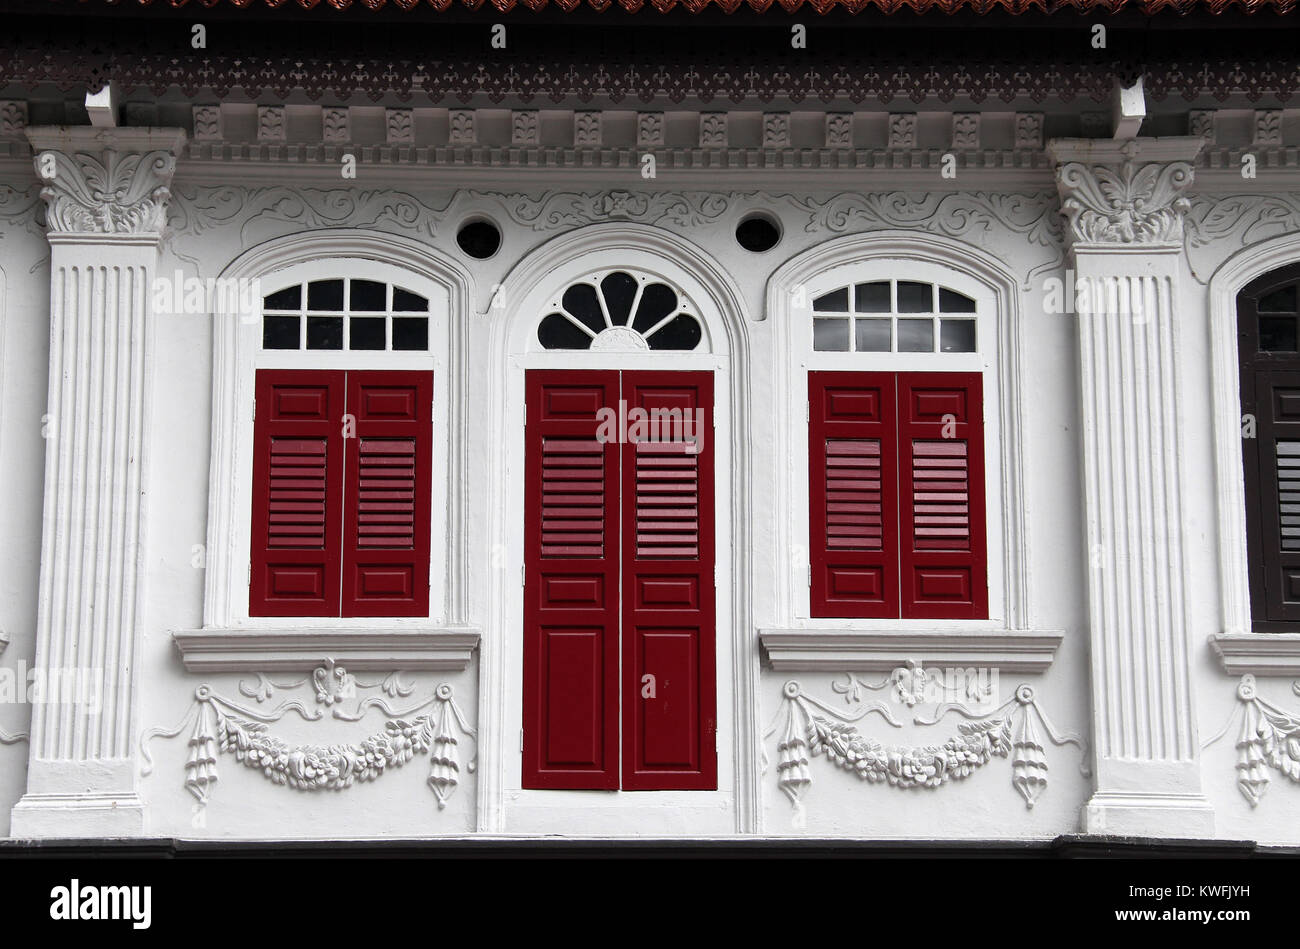 Shophouse in Singapore - Stock Image